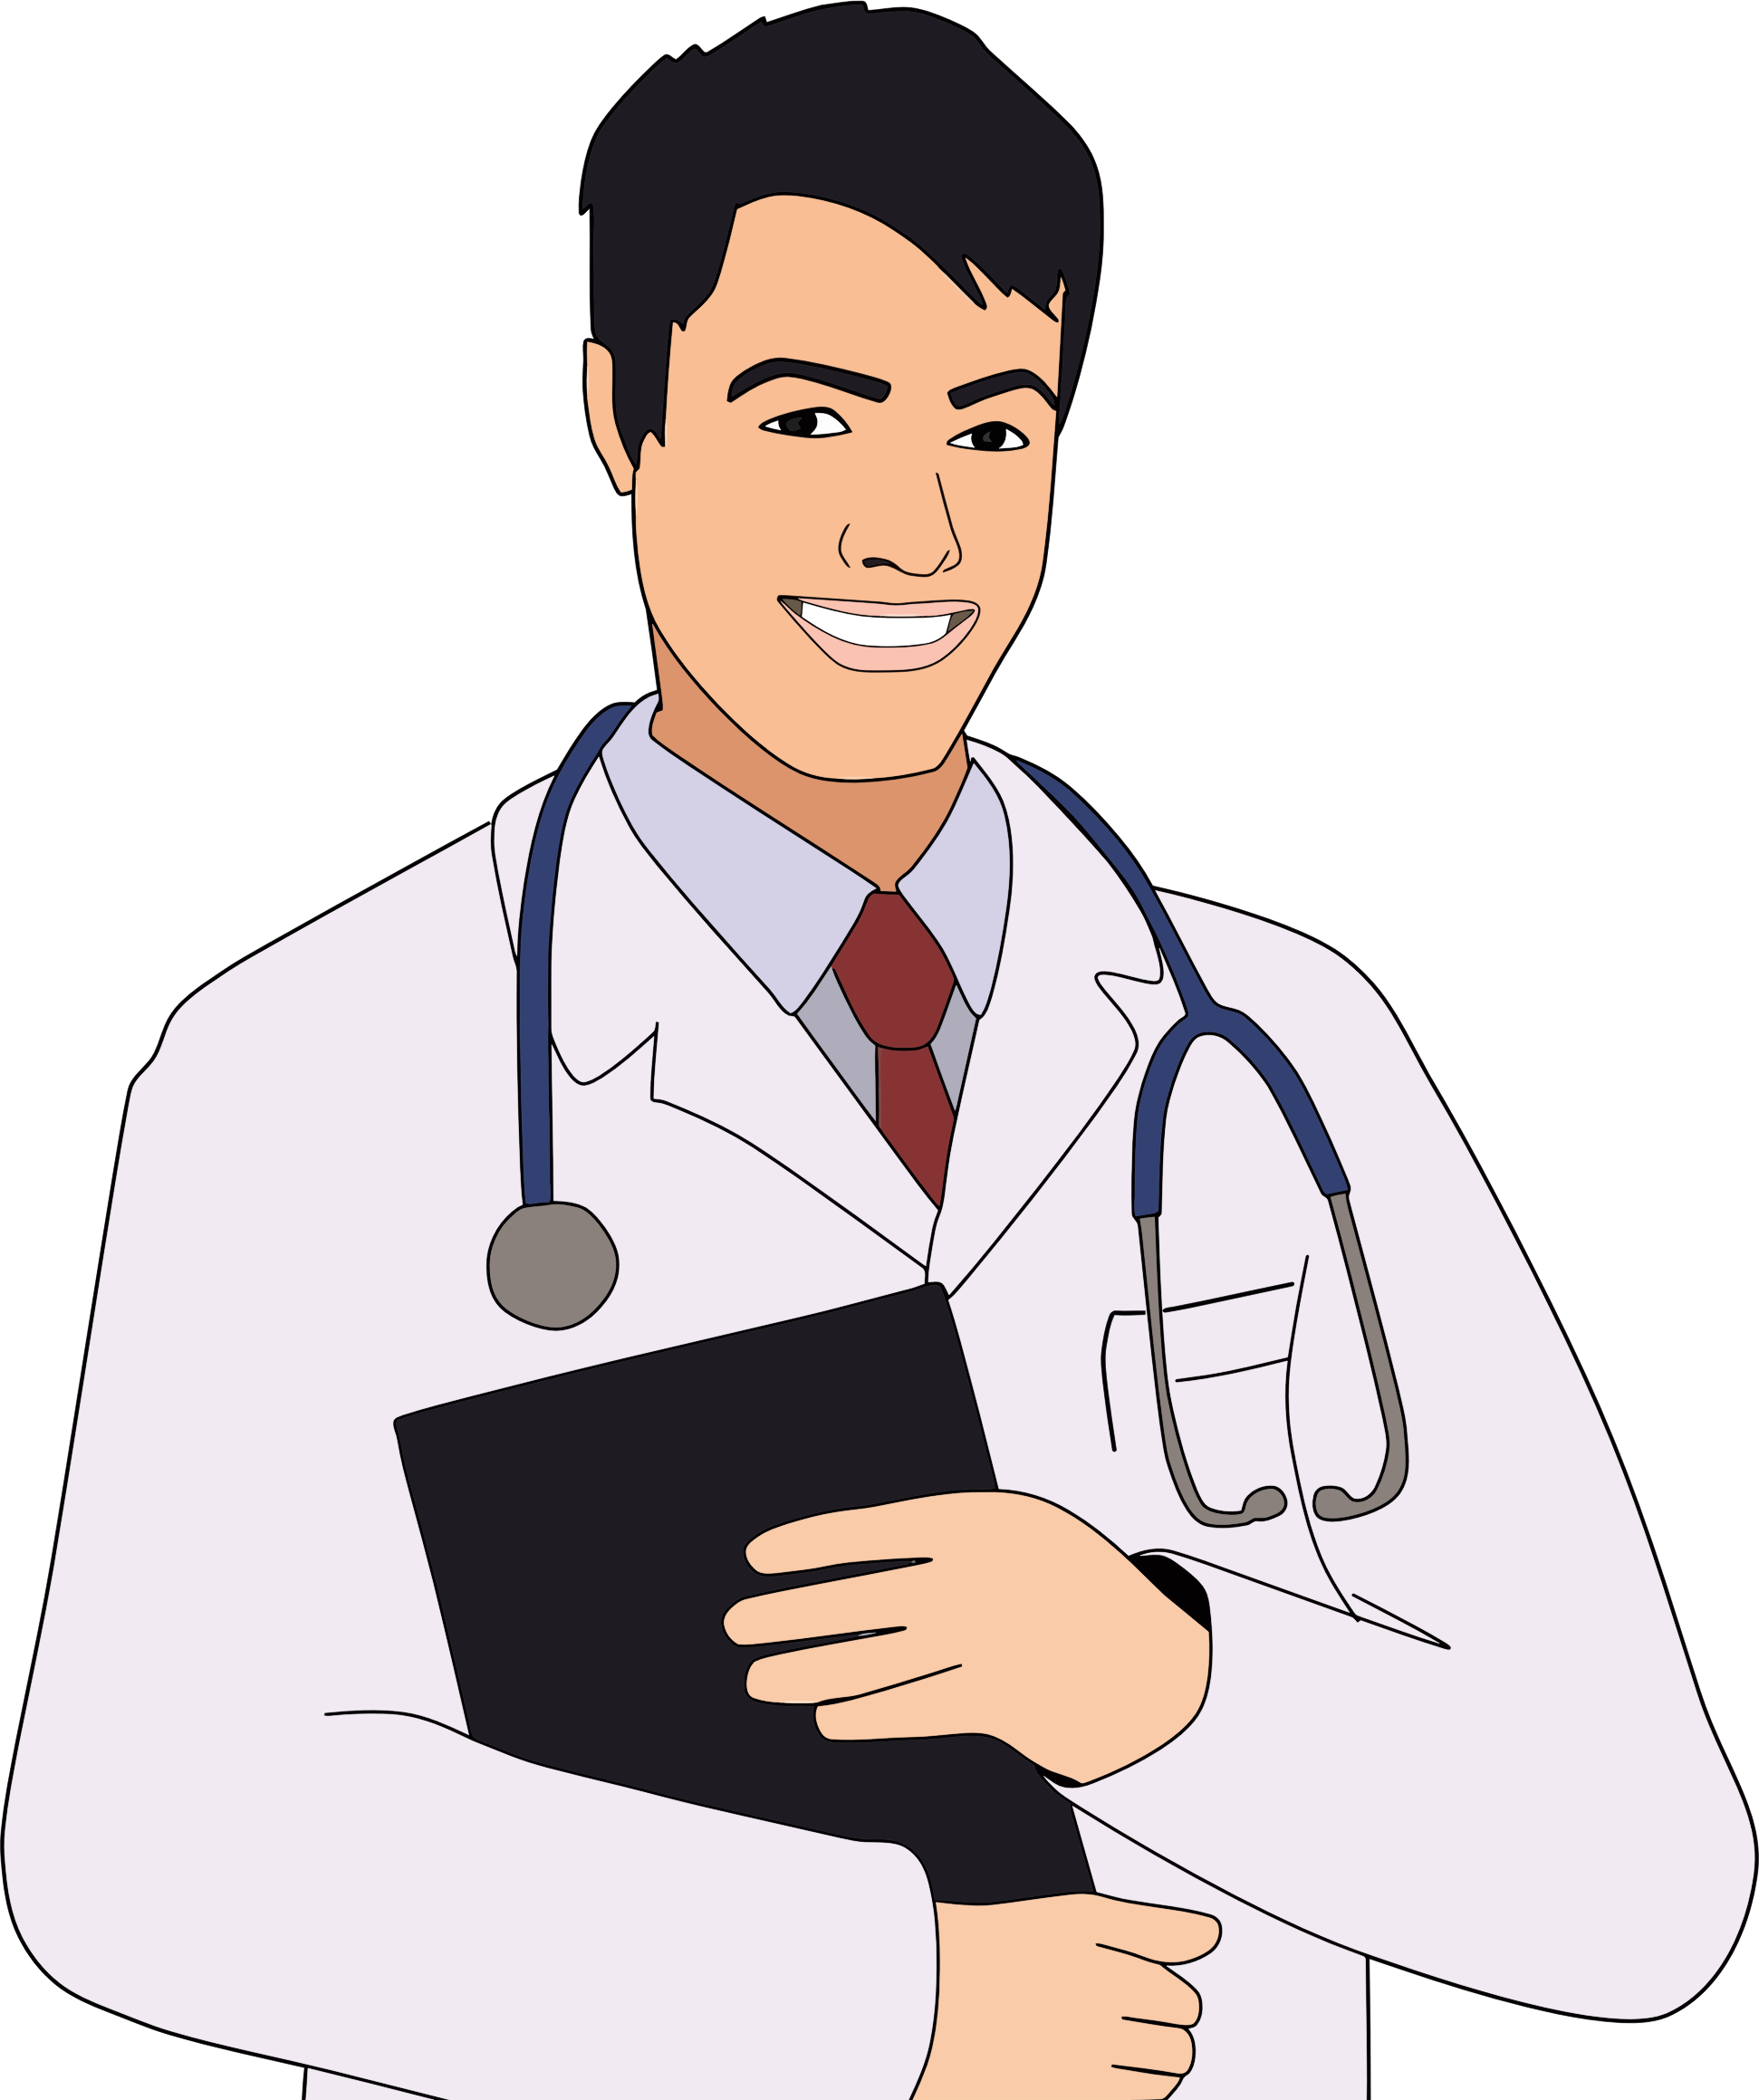 Young Male Doctor by GDJ